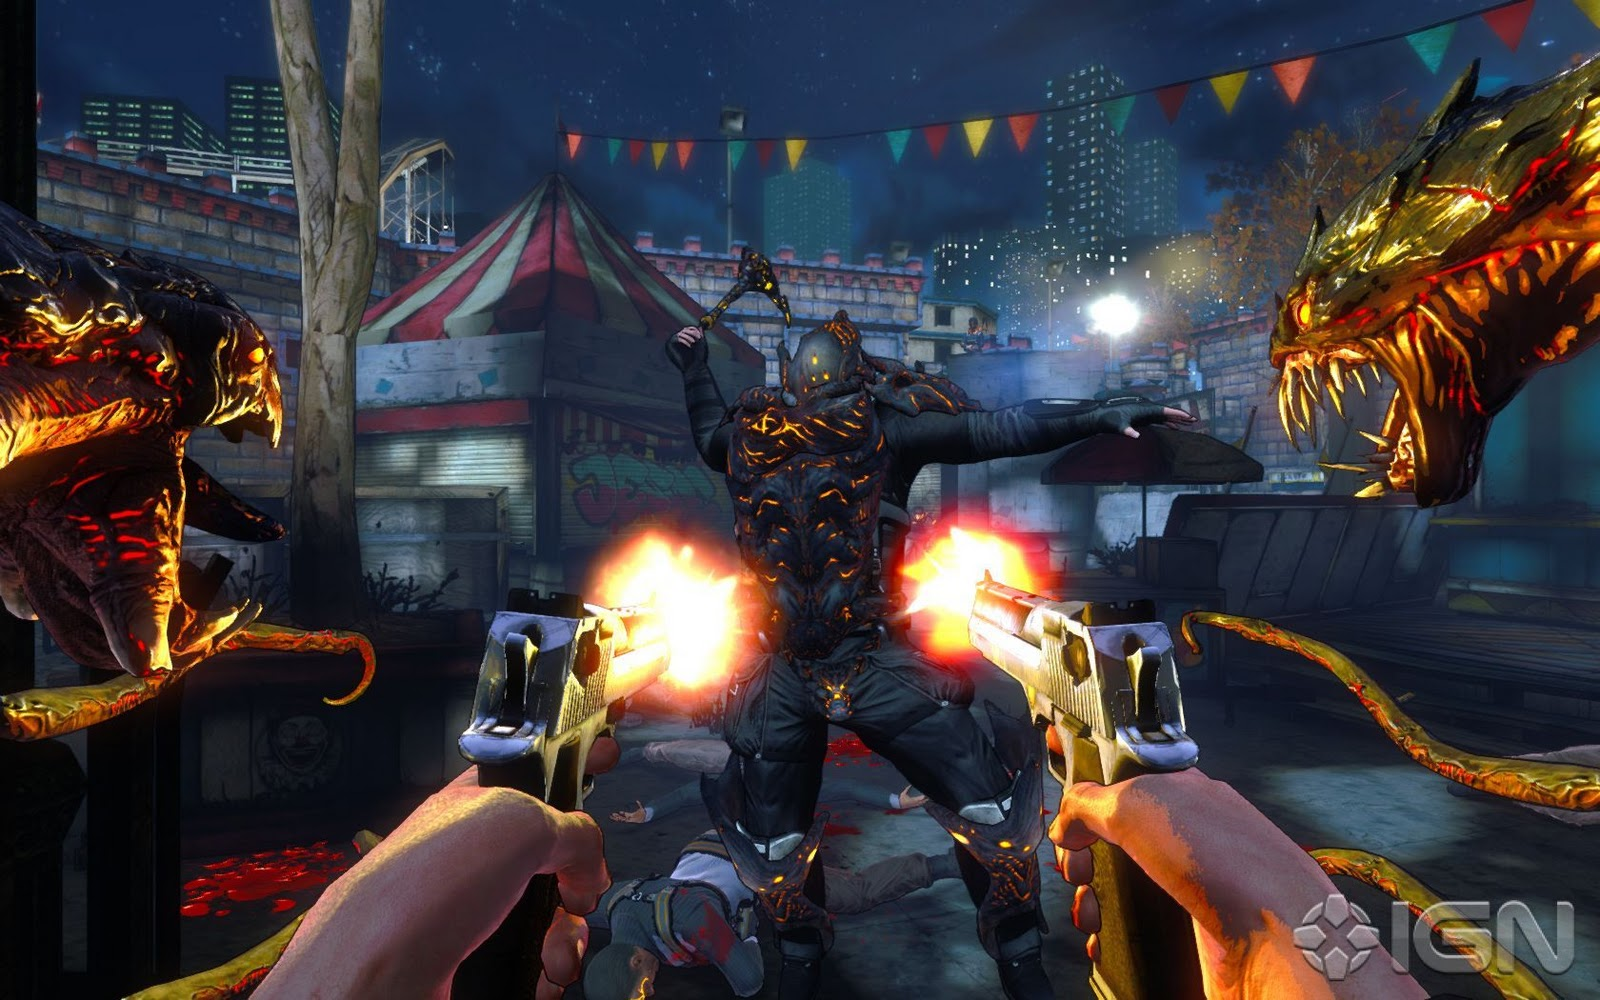 Darkness 2, FPS, First Person Shooter, gaming, video games, article, Future Pixel, Xbox 360, PS3, PC